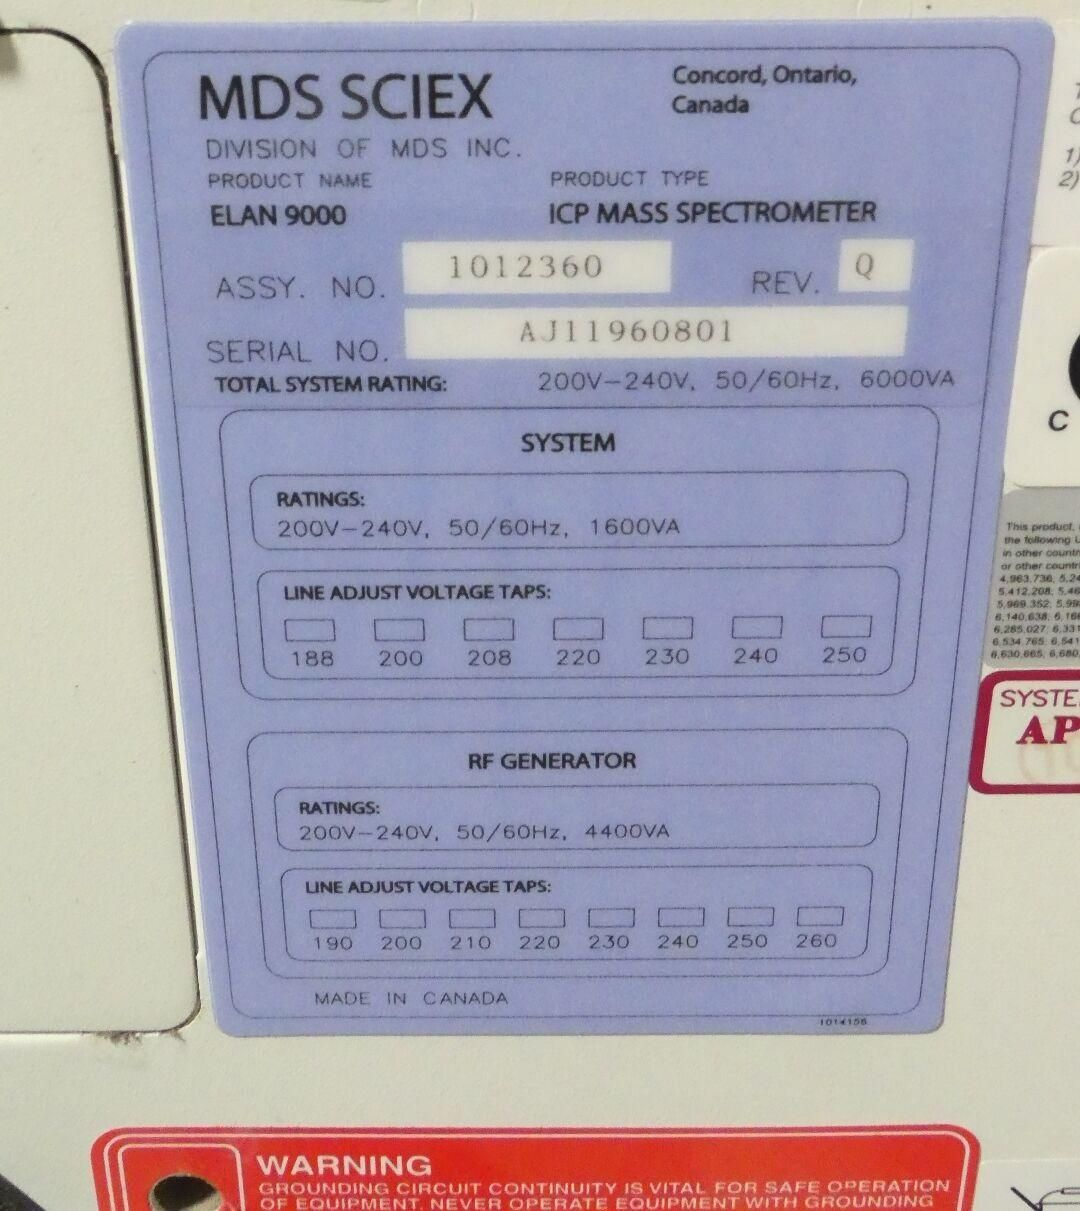 Complete Perkin Elmer Elan 9000 ICPMS with Autosampler, Chiller and 90-Day Warranty